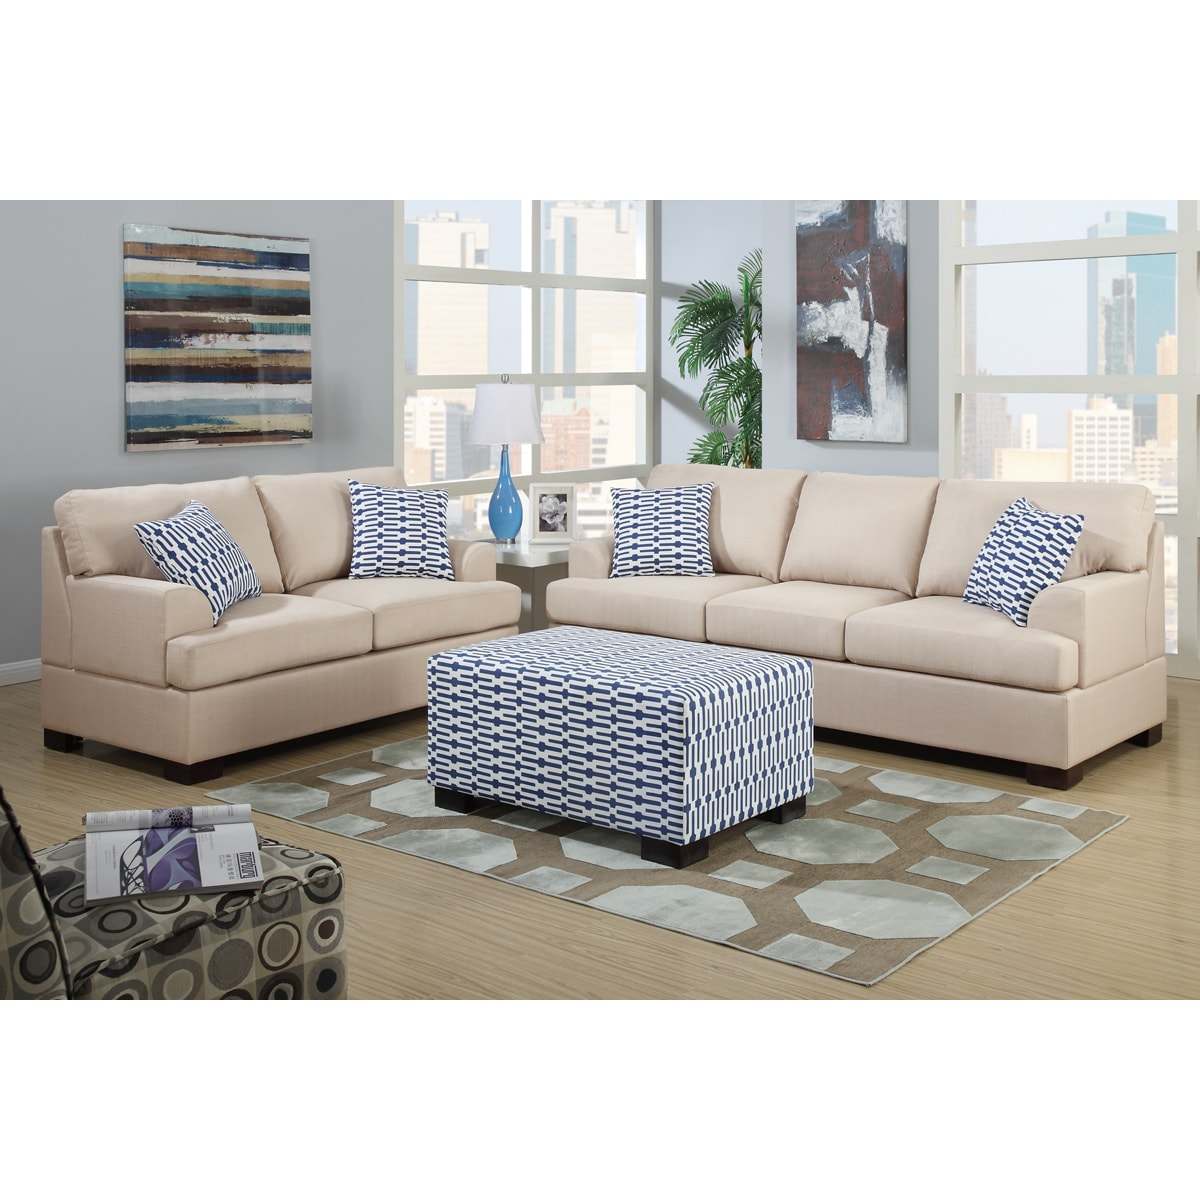 montreal sectional sofa in slate all weather rattan sets ottoman and matching pillows home ideas